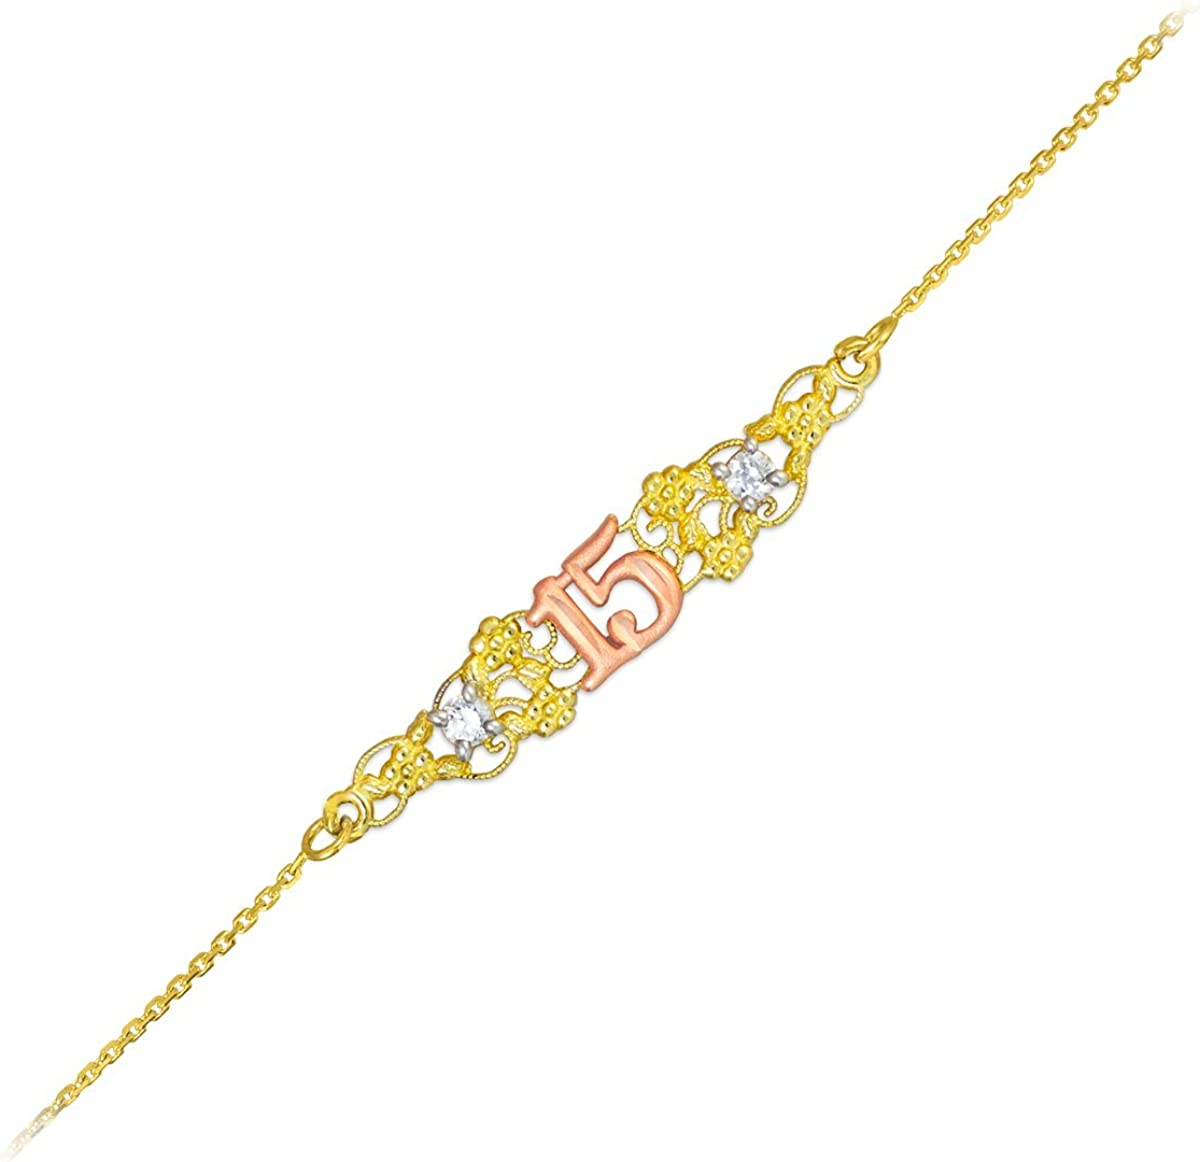 14k Tri-Color Gold Sweet 15 Anos Quinceanera Bracelet 7 With 0.5 Extension 7 With 0.5 Extension Calddagh Gold B689